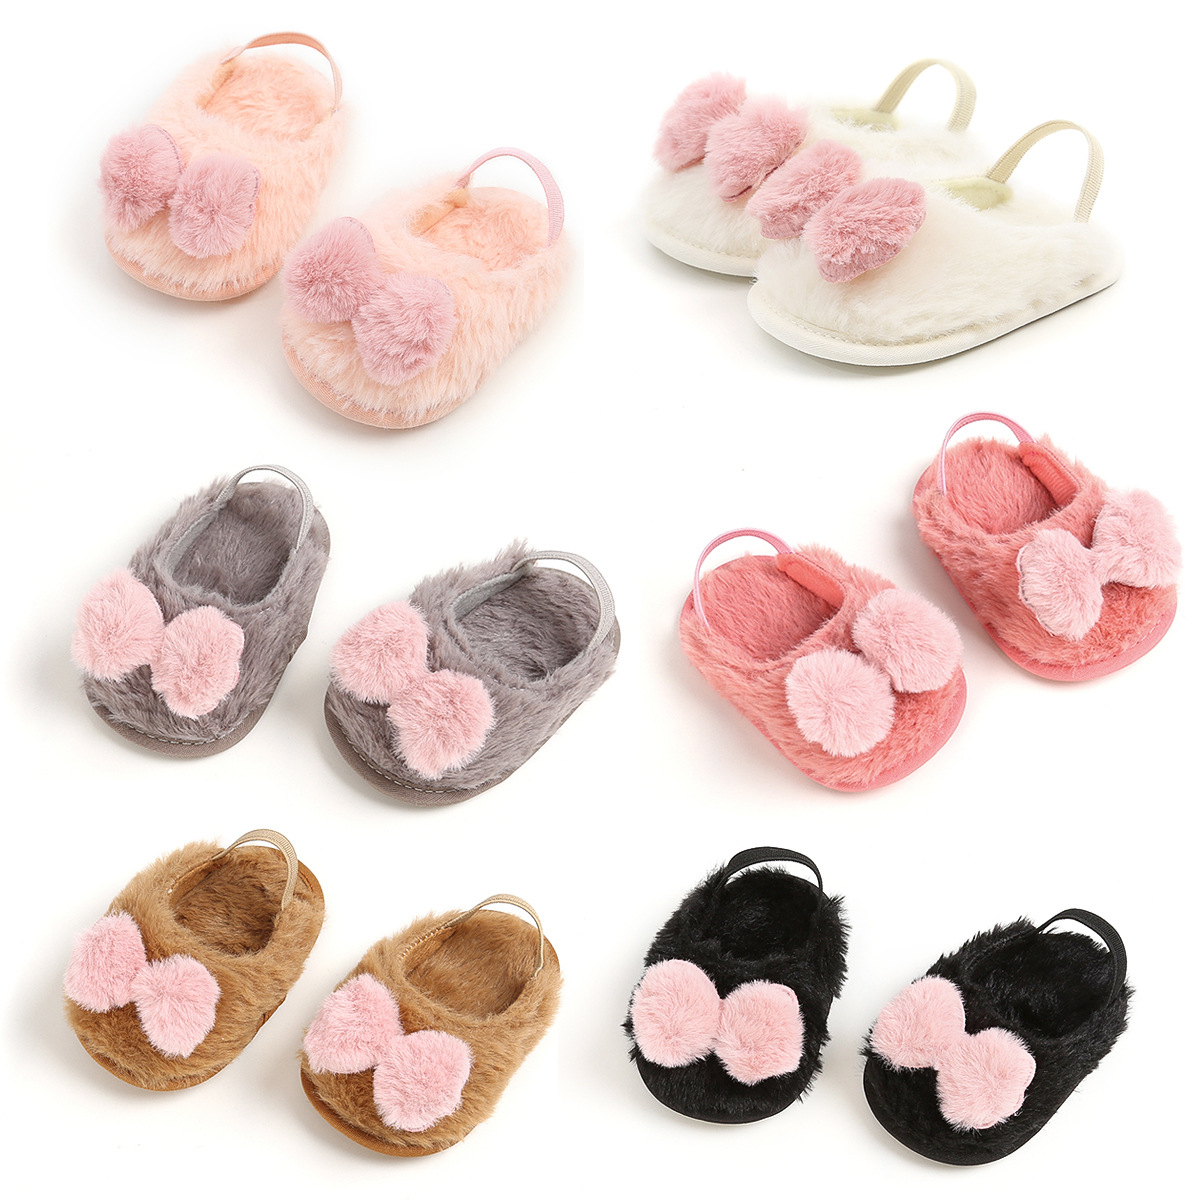 2020 New Baby Girls Slippers Fashion Newborn Girls Moccasins First Walkers Baby Shoes Sale